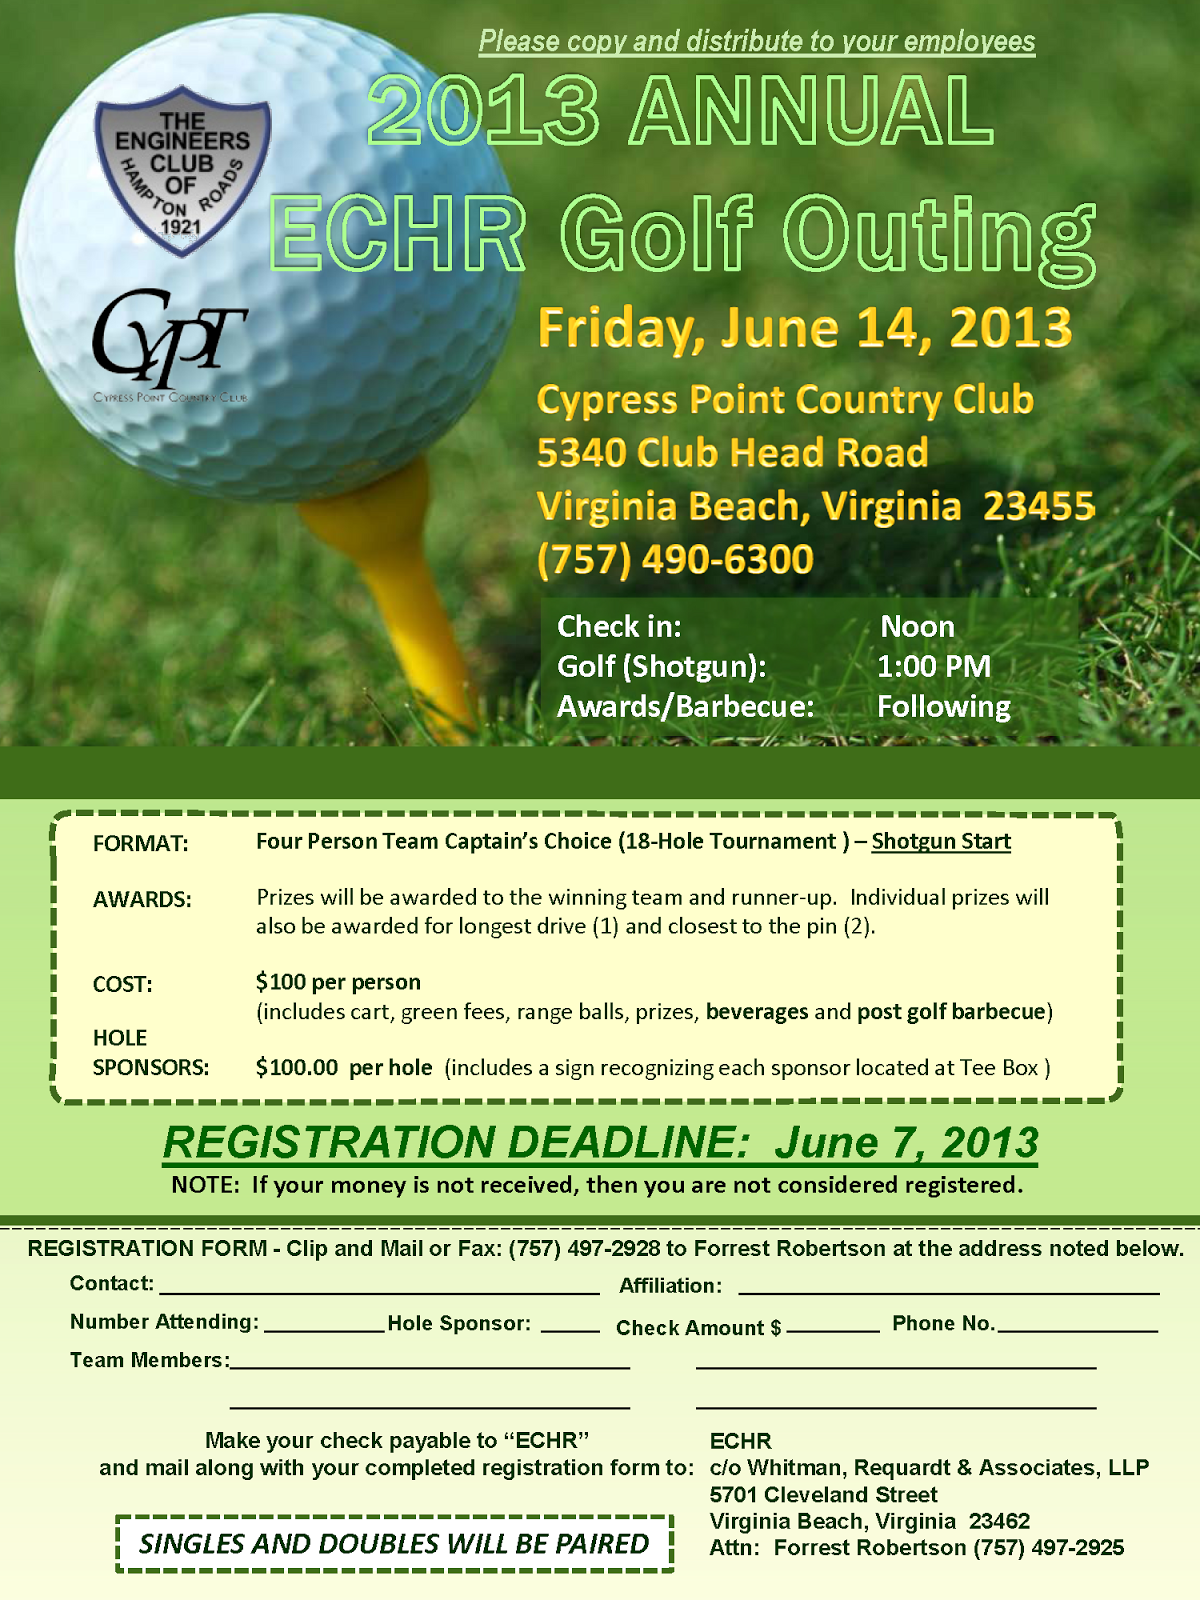 Tidewater Chapter VSPE 2013 Annual ECHR Golf Outing